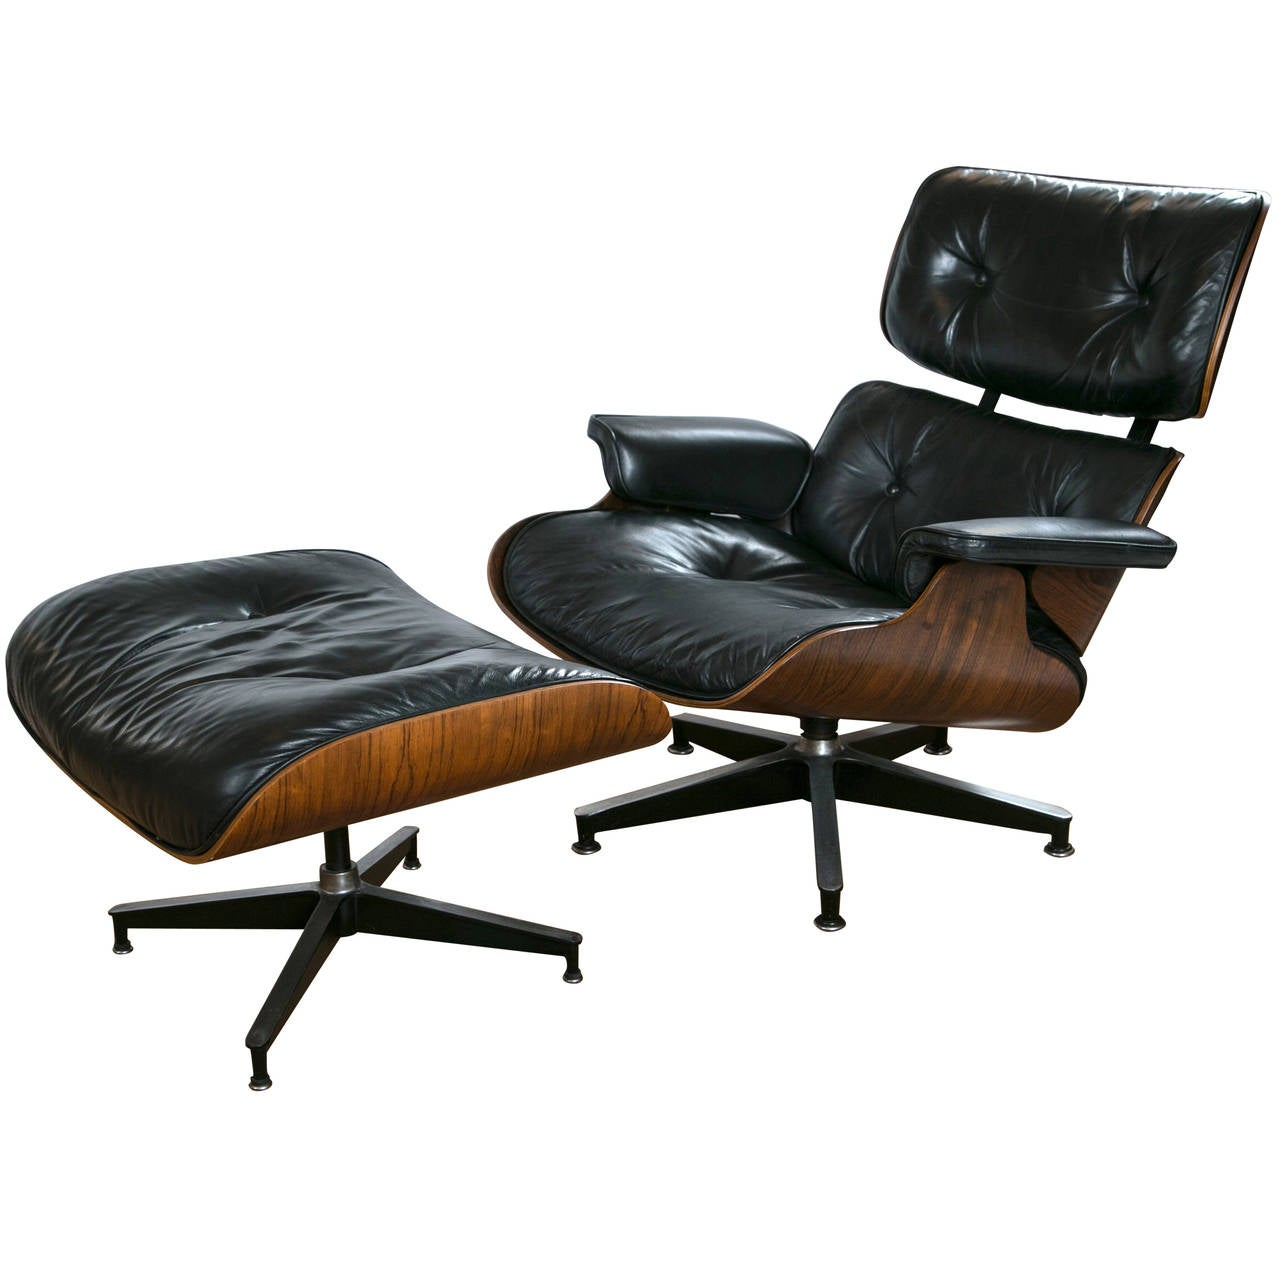 vintage eames lounge chair and ottoman at 1stdibs. Black Bedroom Furniture Sets. Home Design Ideas